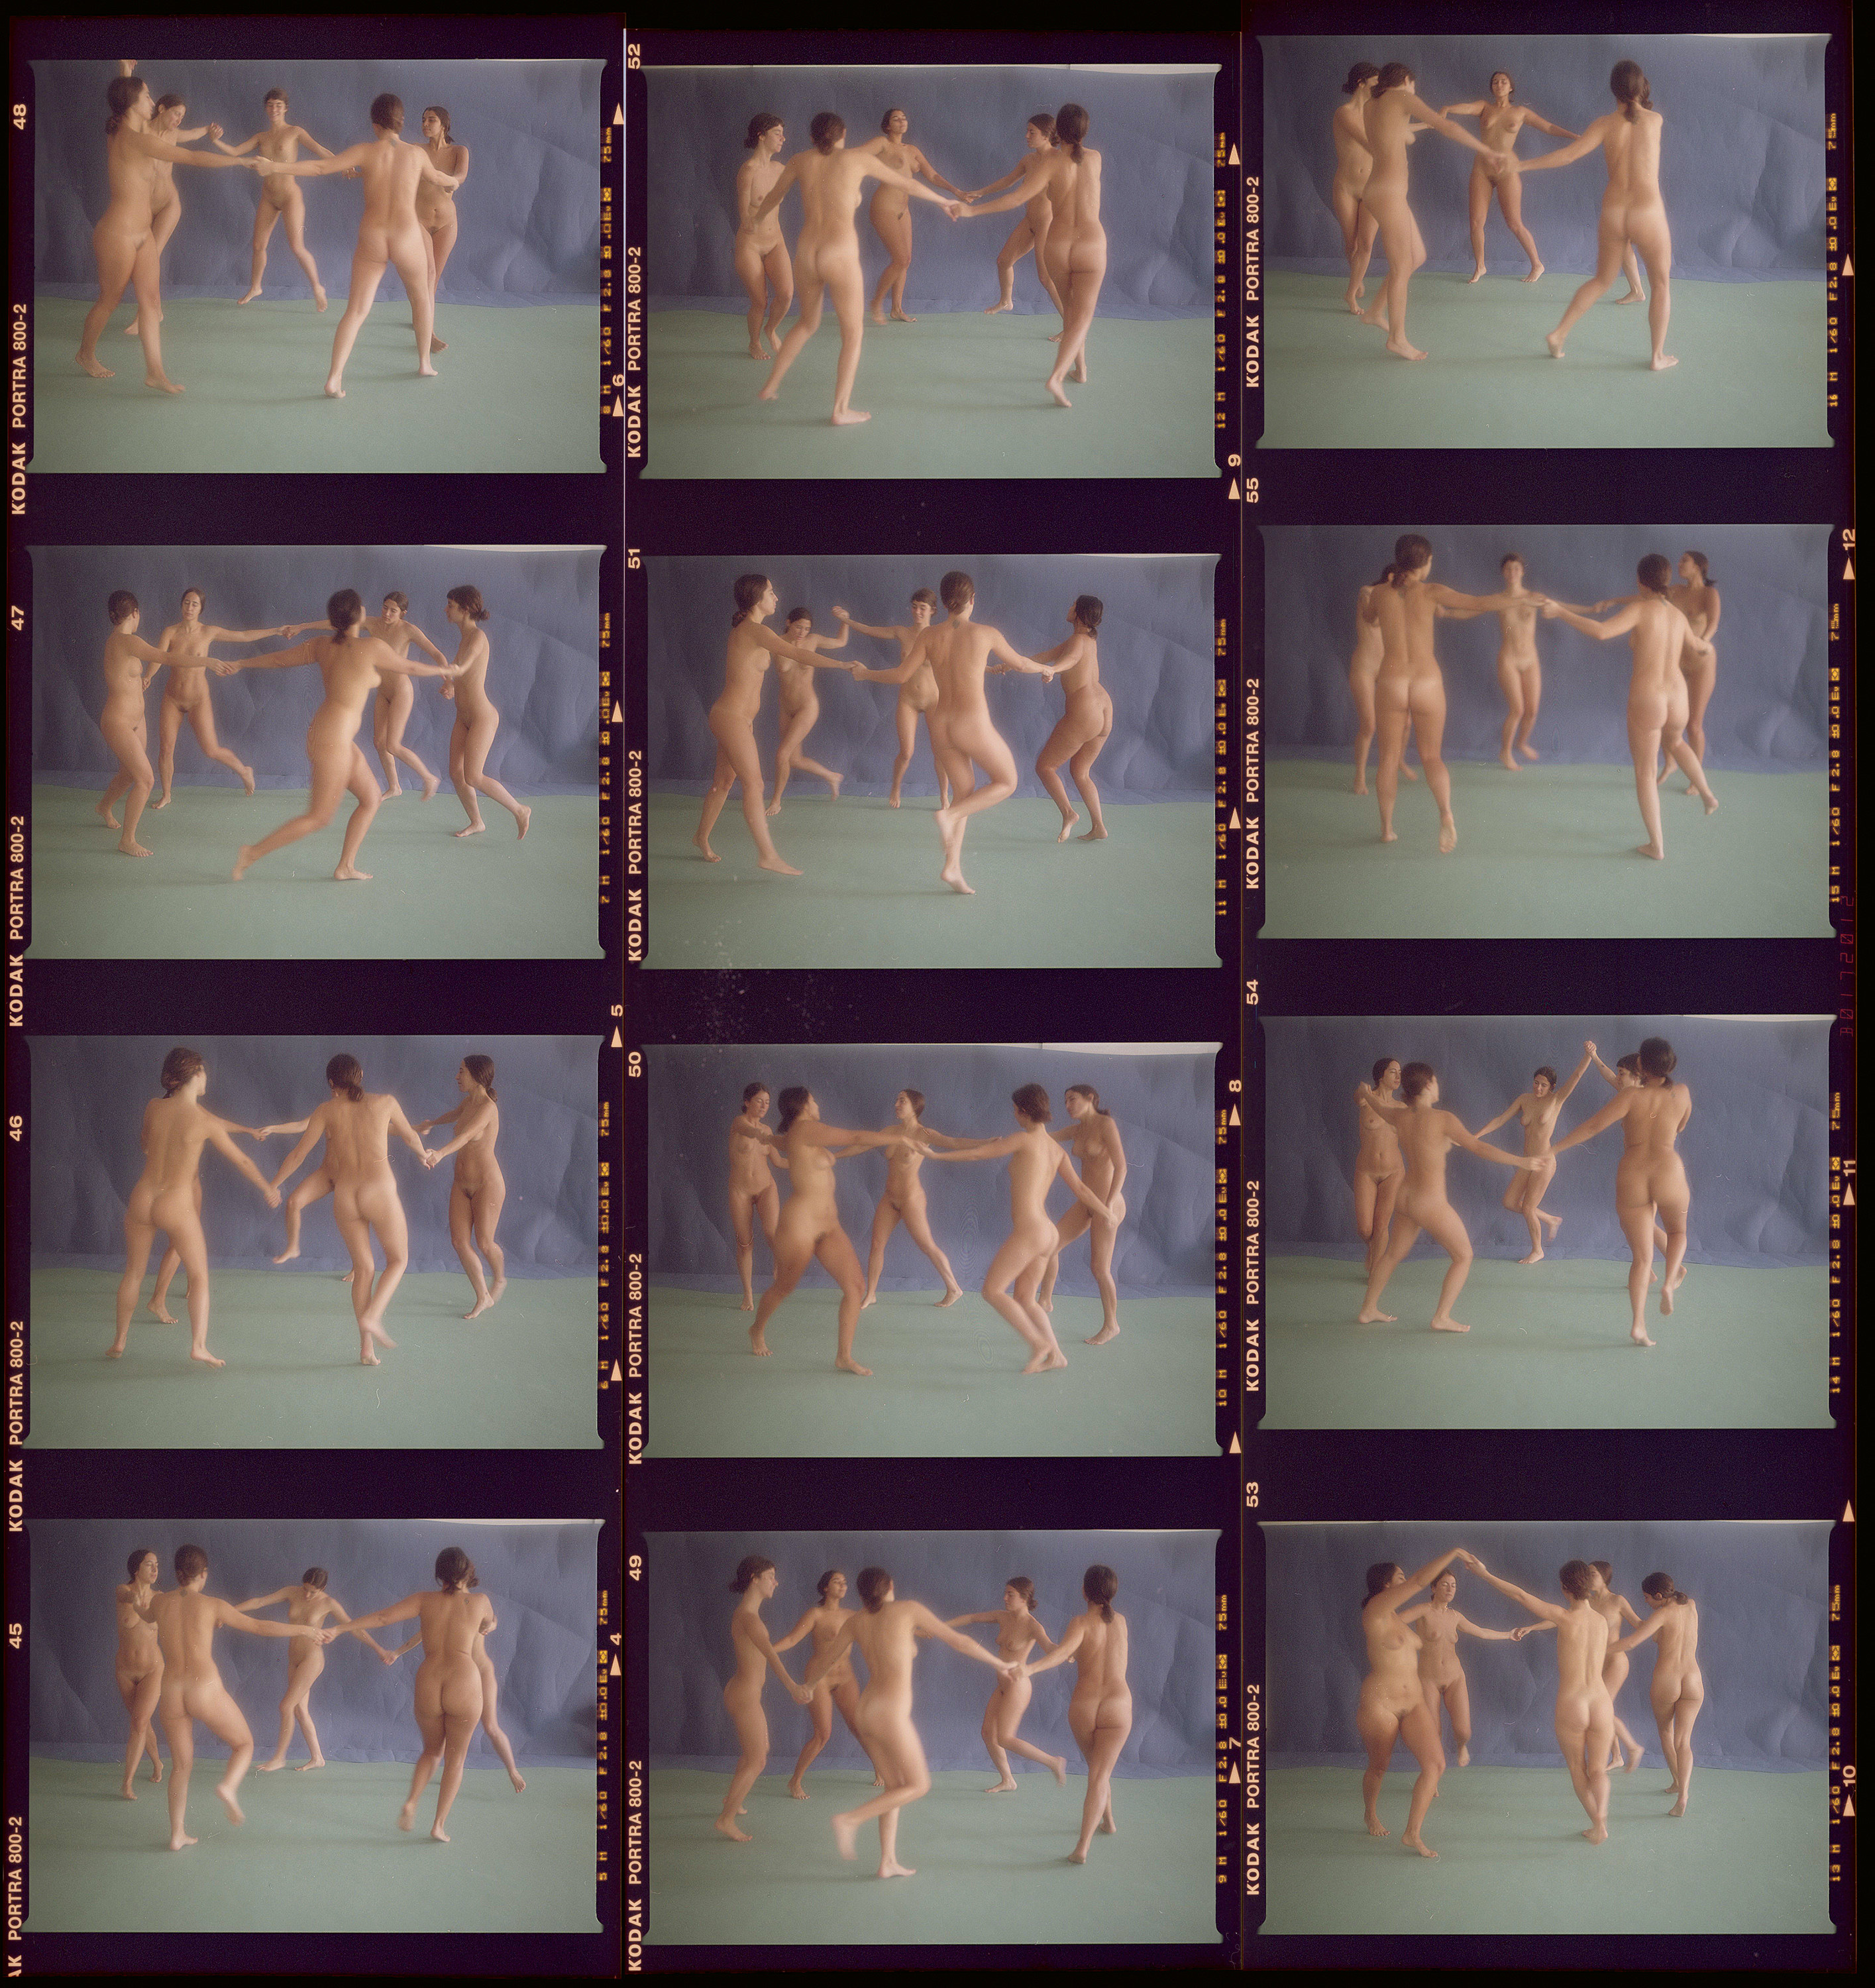 A group of women dancing in a contact sheet that resembles a Matisse painting